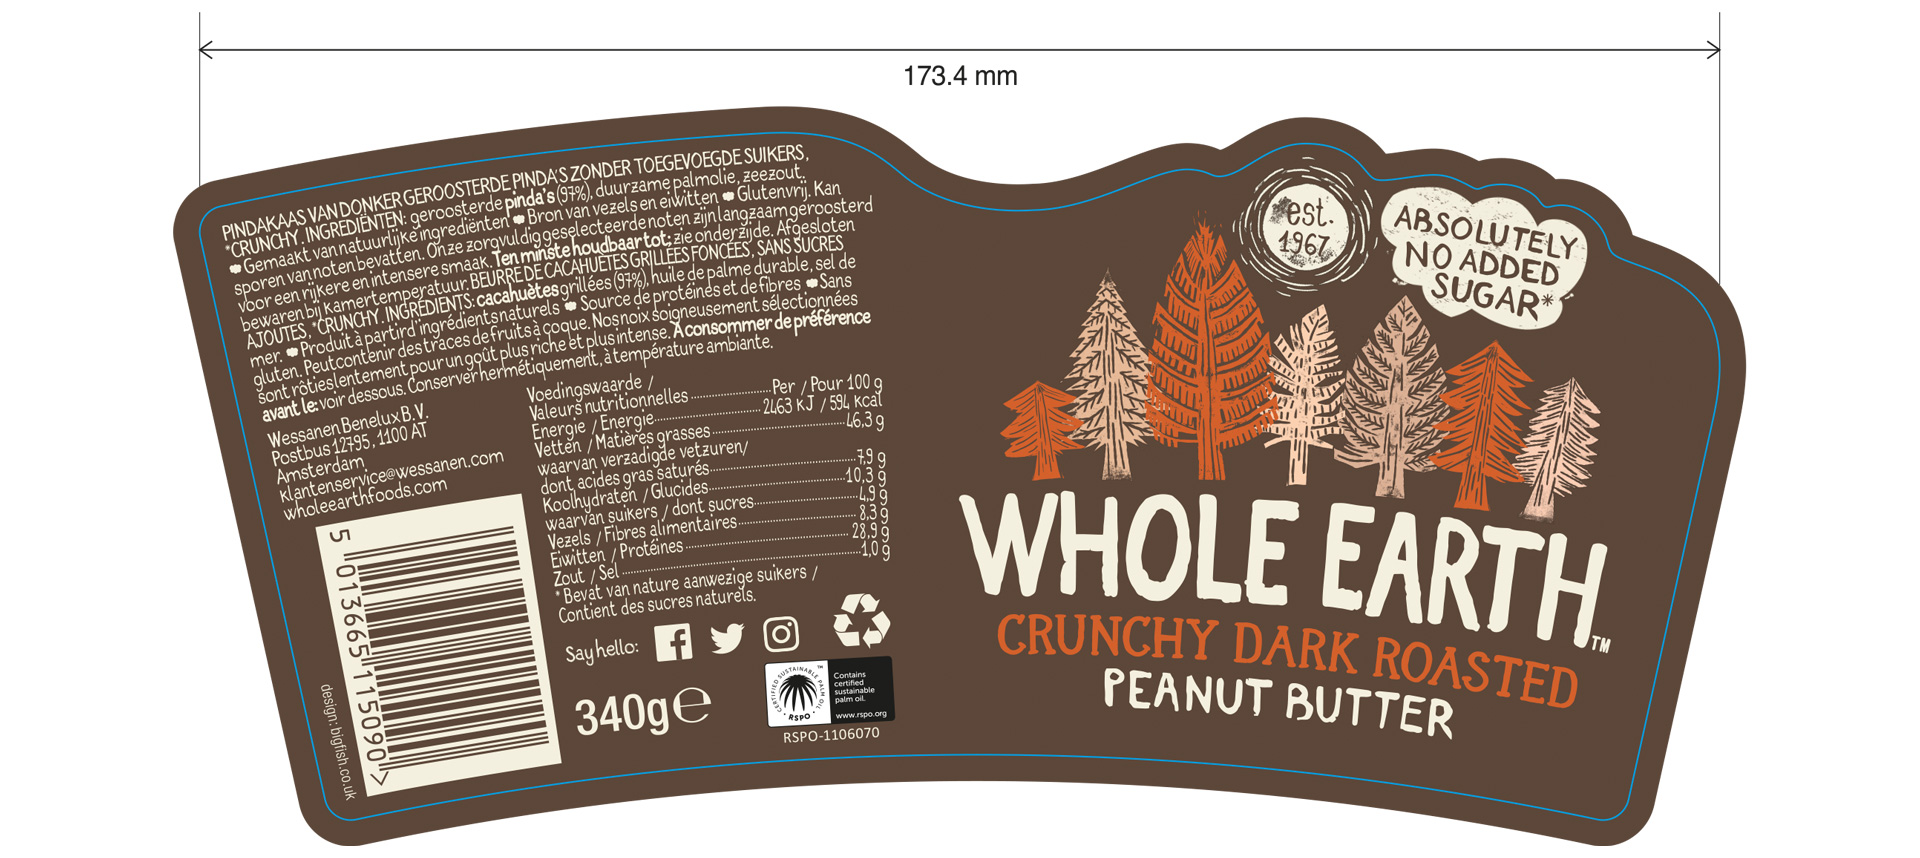 packaging-artwork-whole-earth